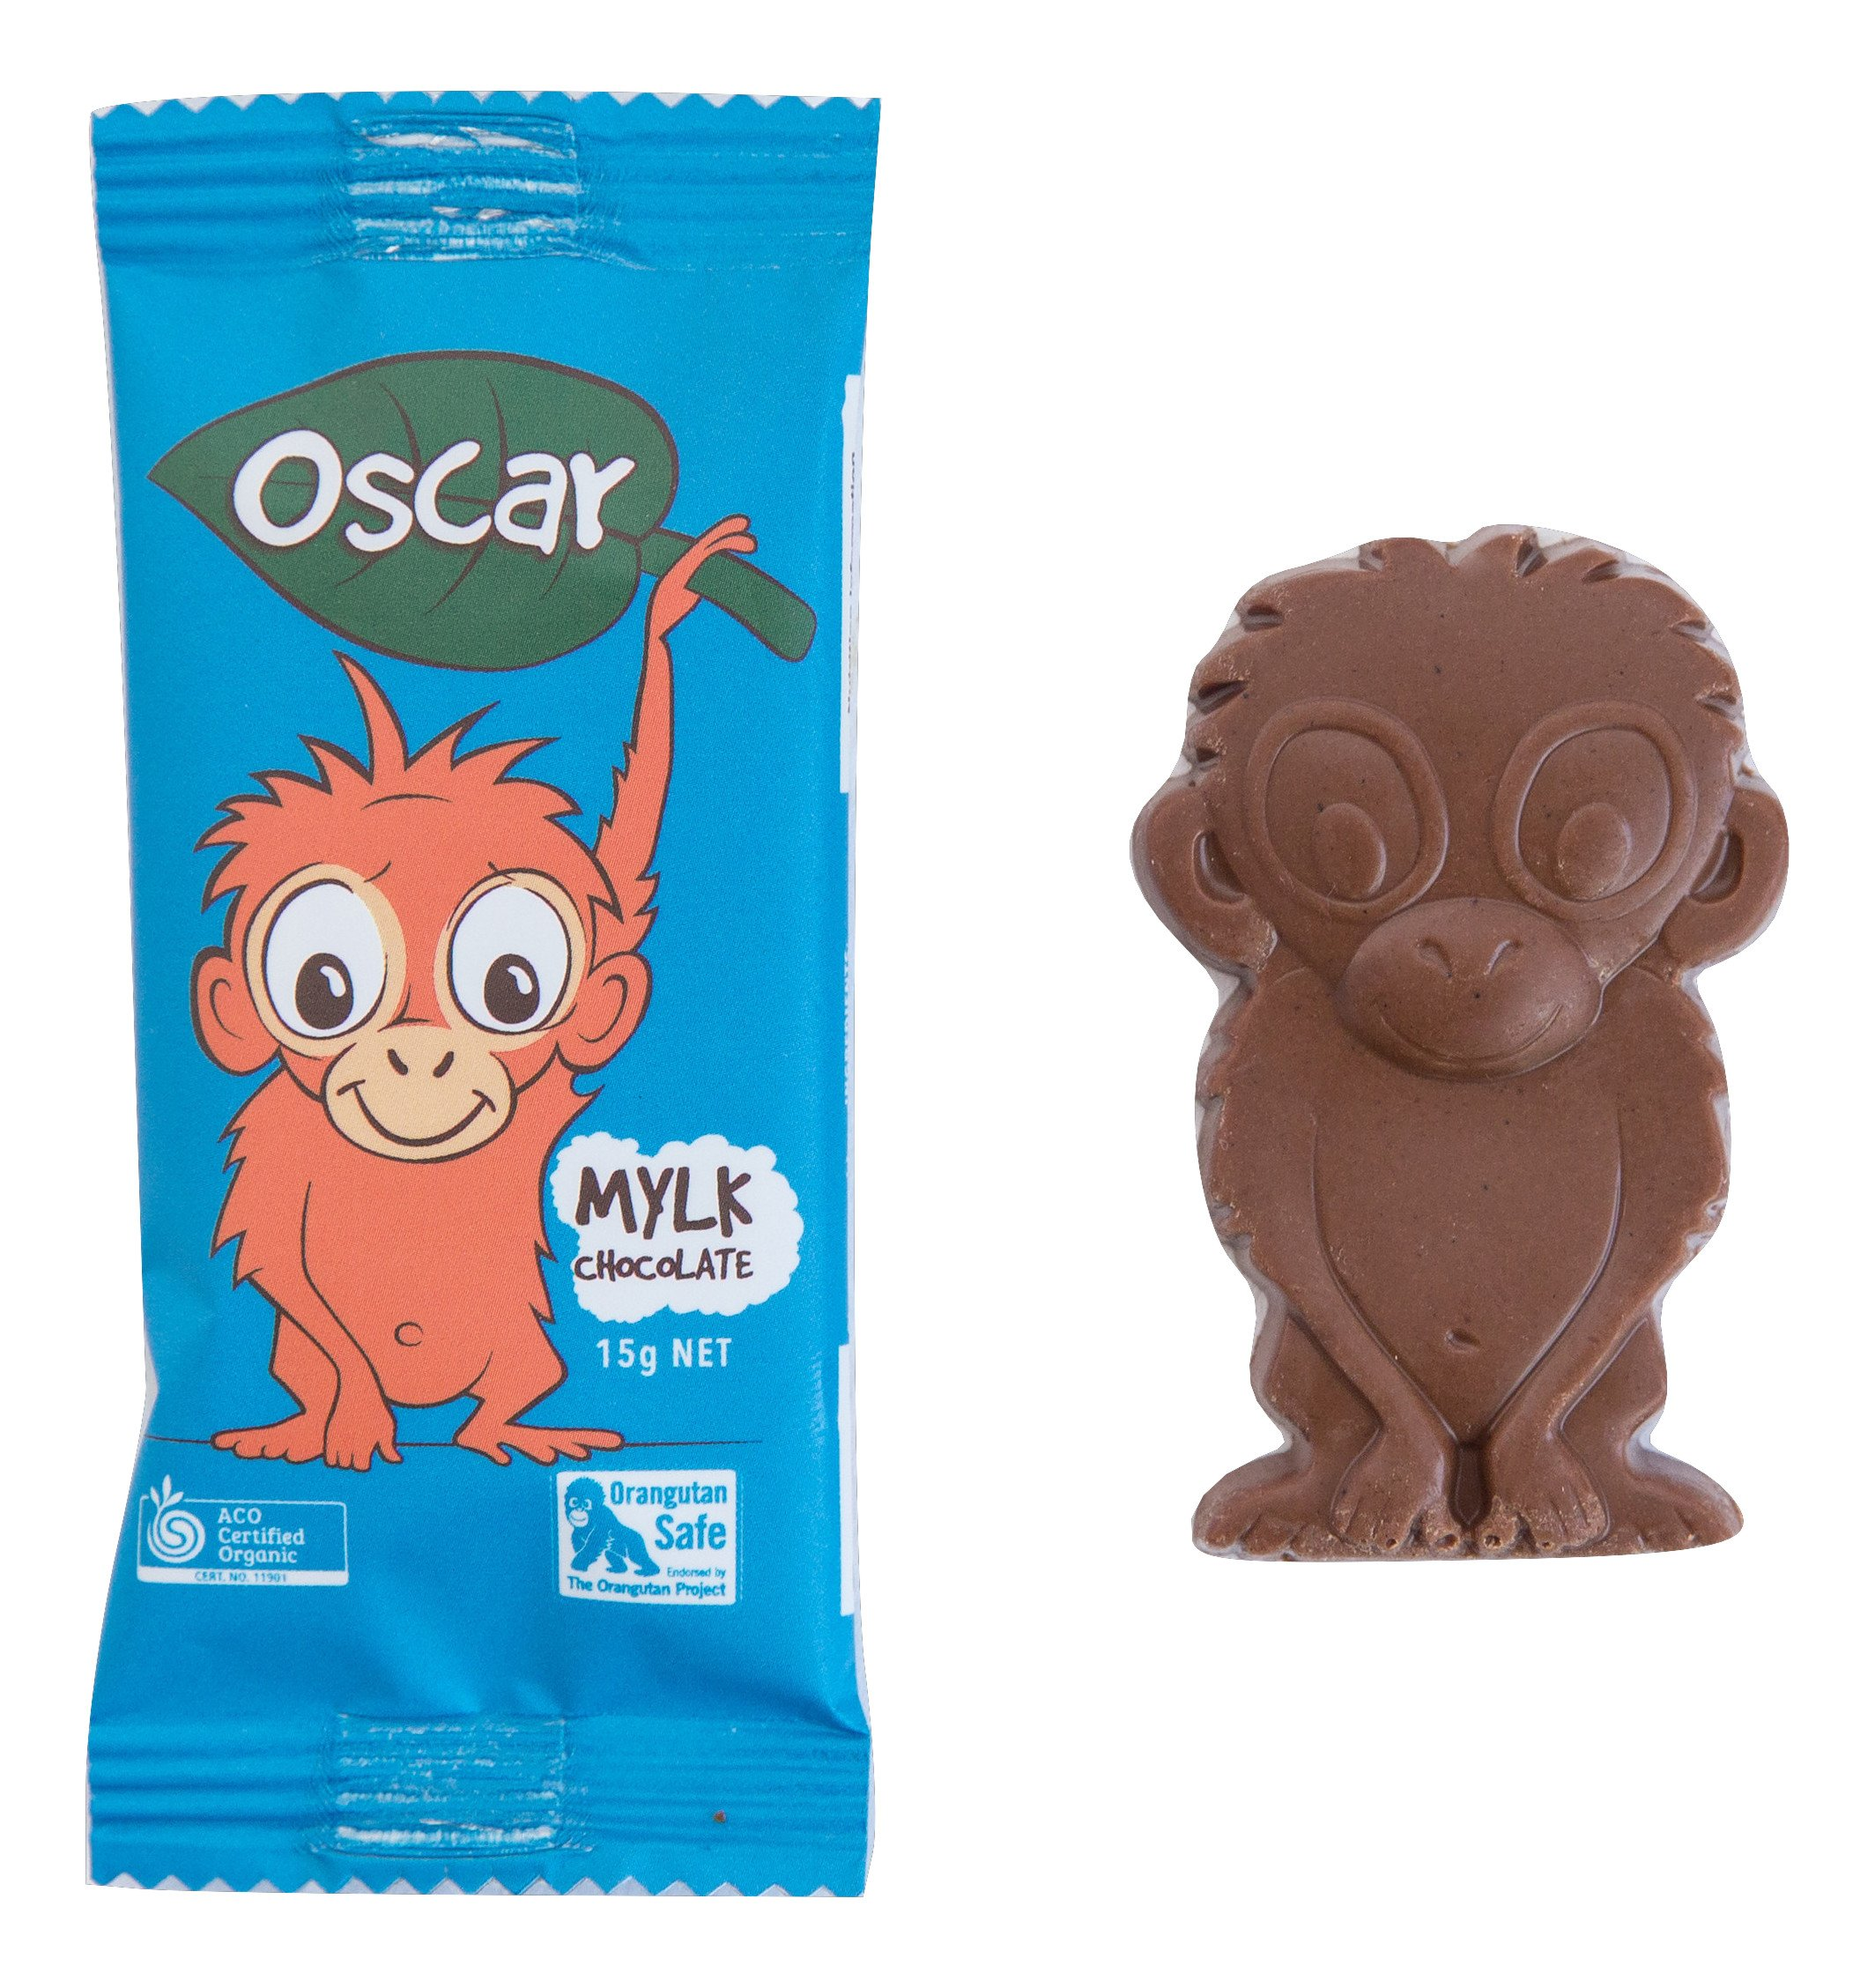 Oscar-Everything-Coconut-And-More